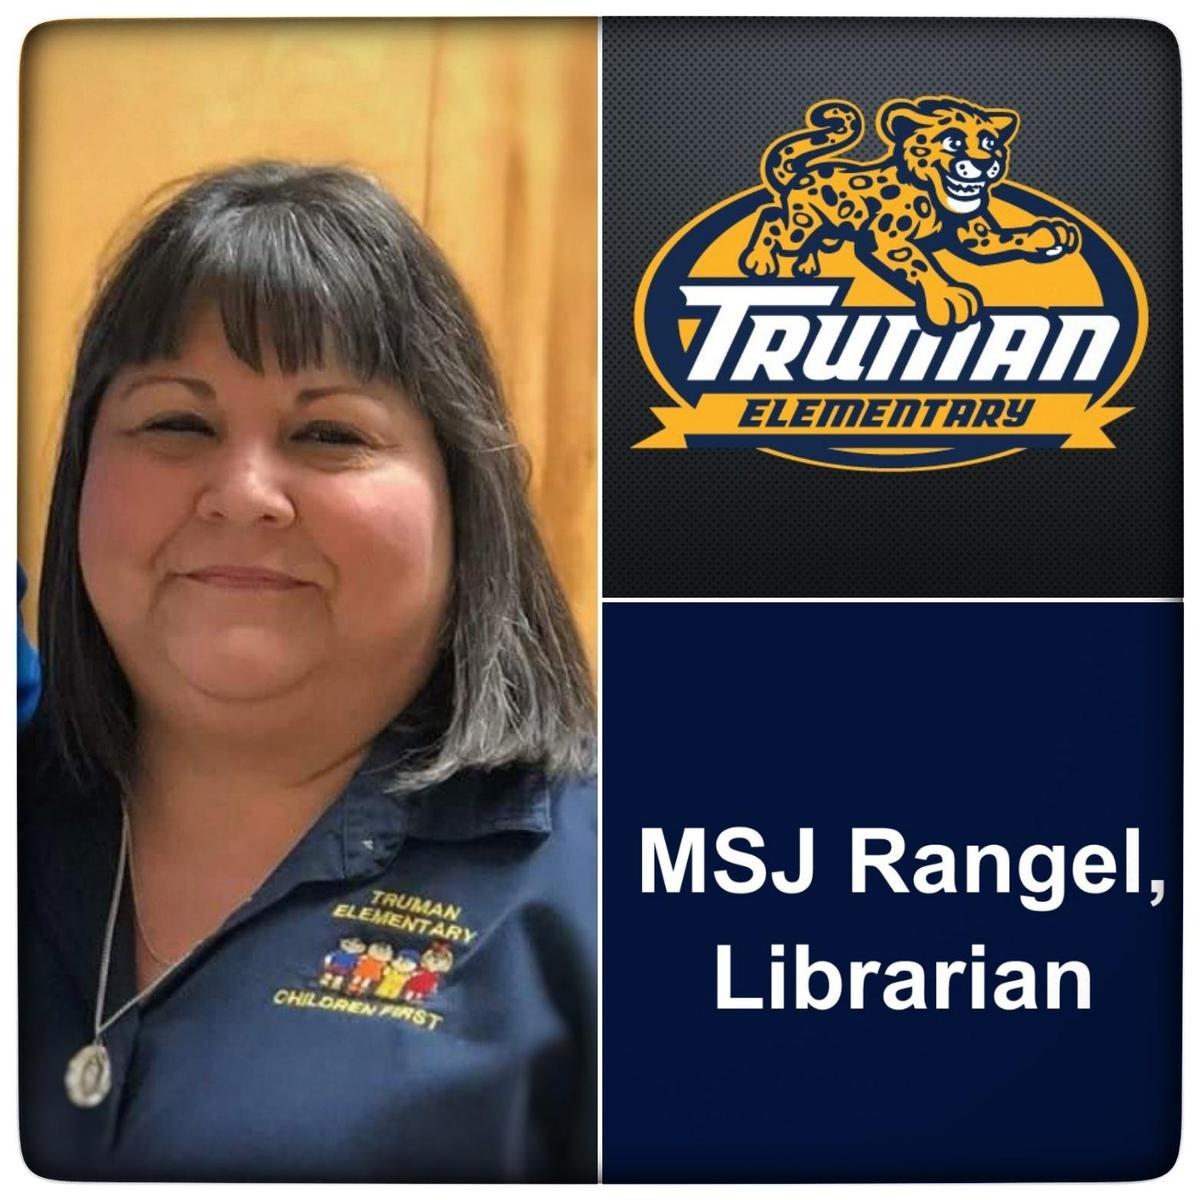 Image of the librarian MSJ Rangel and Truman Logo